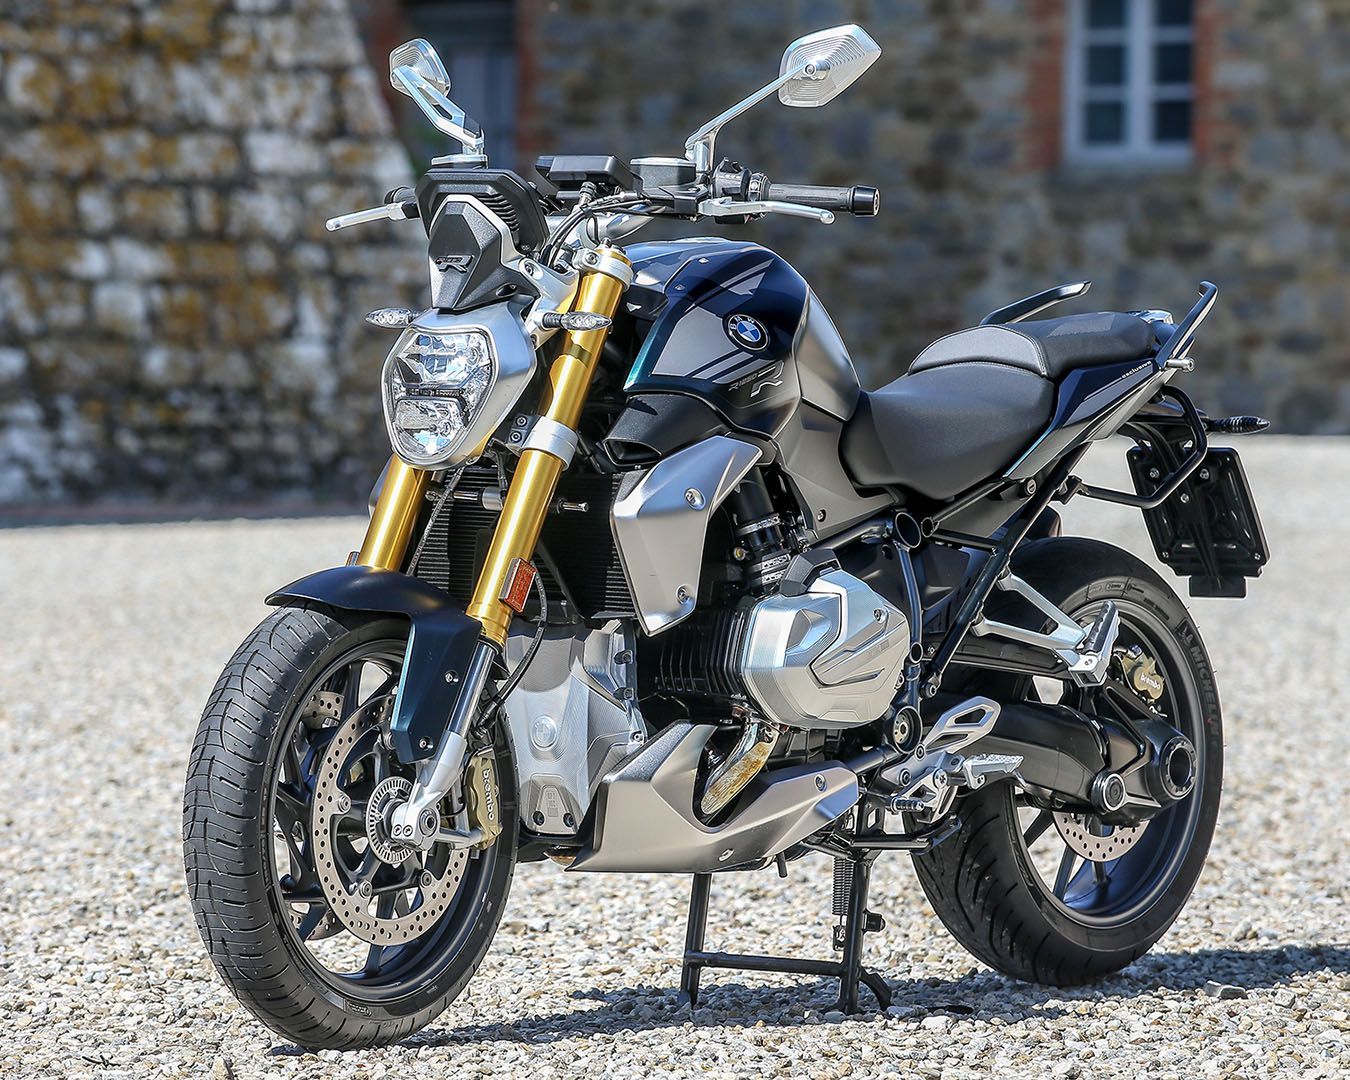 2020 Bmw R 1250 R And Bmw R 1250 Rs First Look And Prices We Take A Gander At The New R And Rs Along With Digging Into The I Bmw